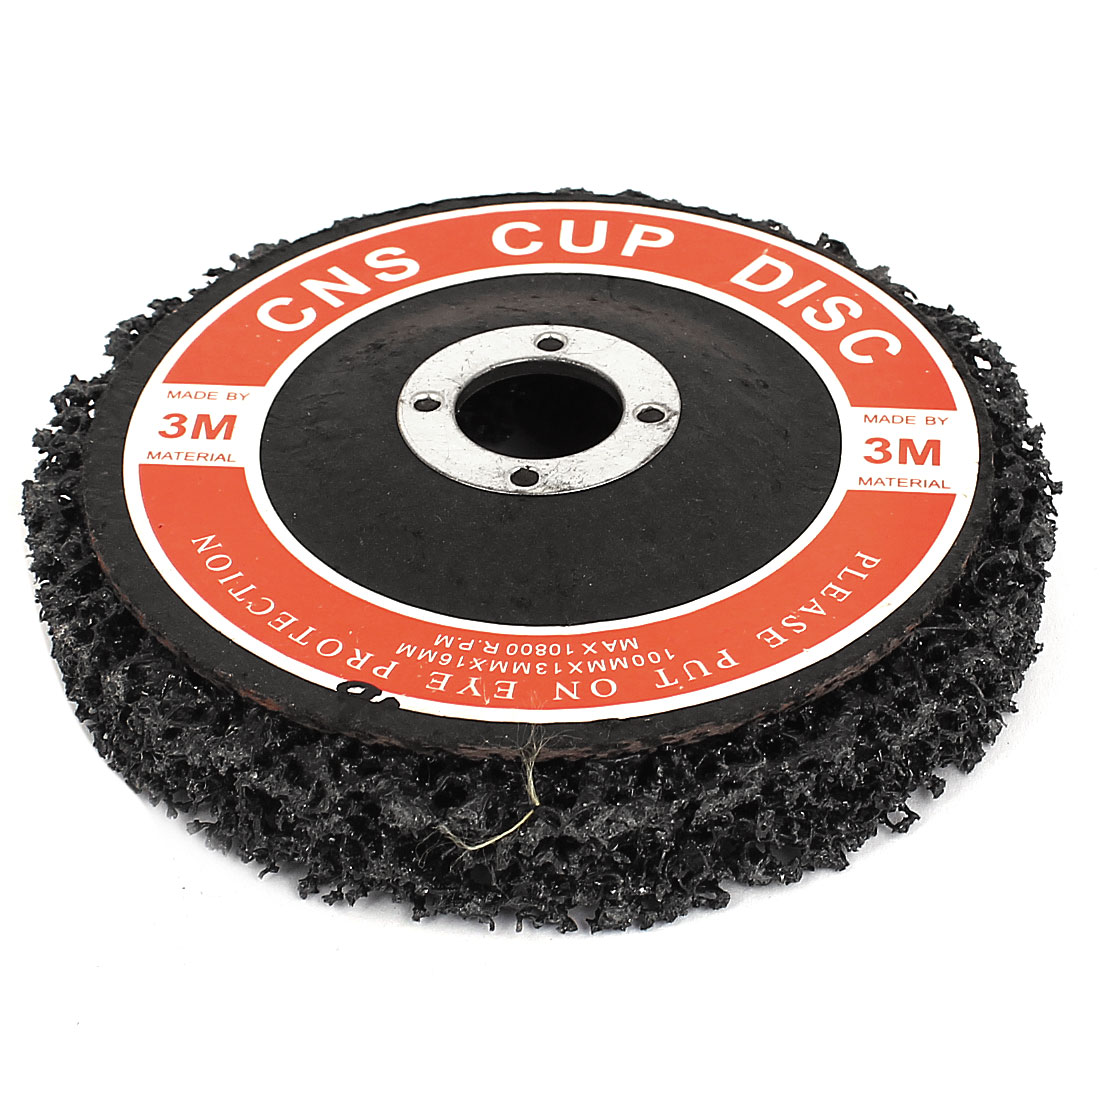 Paint Rust Remover Abrasive Sanding Cleaning Discs Black 100mmx16mmx13mm<br><br>Aliexpress